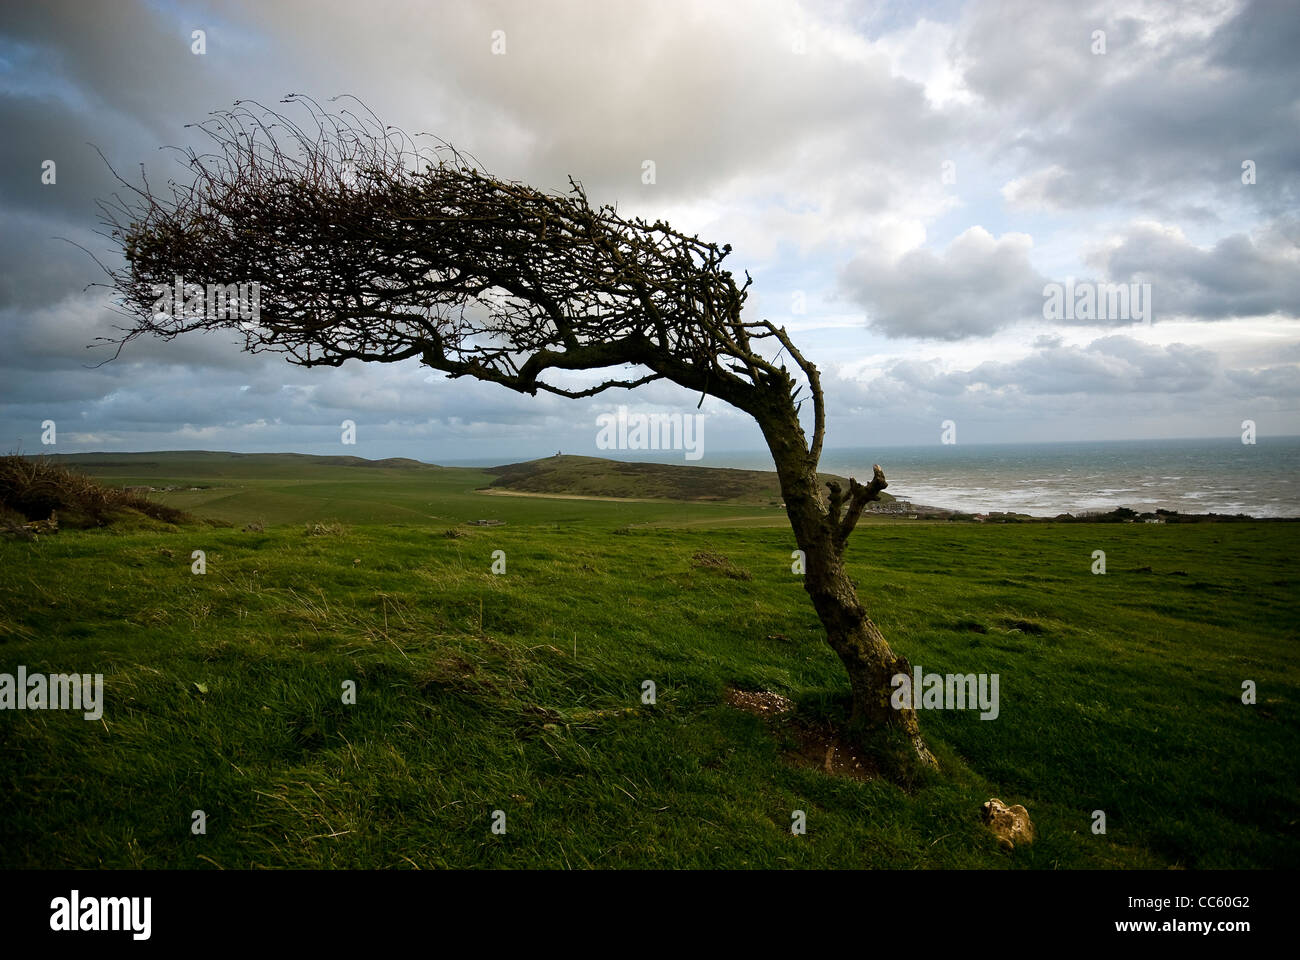 Windswept Hawthorn tree on the South Downs near Birling Gap, East Sussex, UK - Stock Image